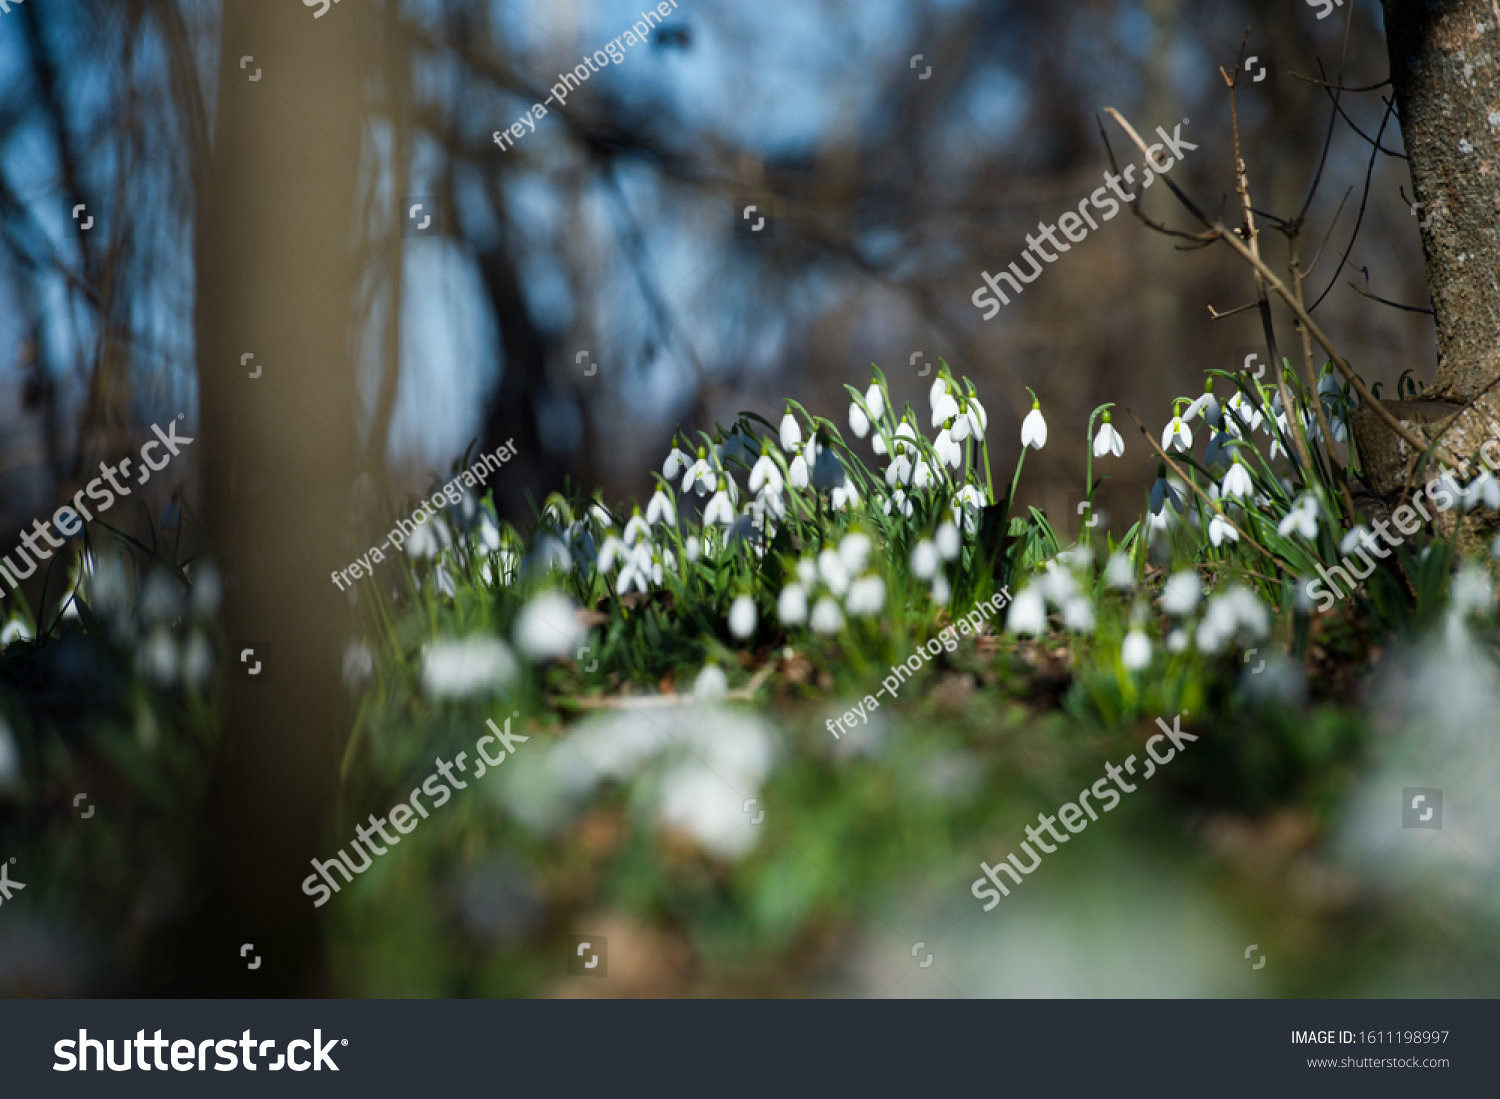 Snowdrop or common snowdrop (Galanthus nivalis) flowers.Snowdrops after the snow has melted. In the forest in the wild in spring snowdrops bloom. #1611198997